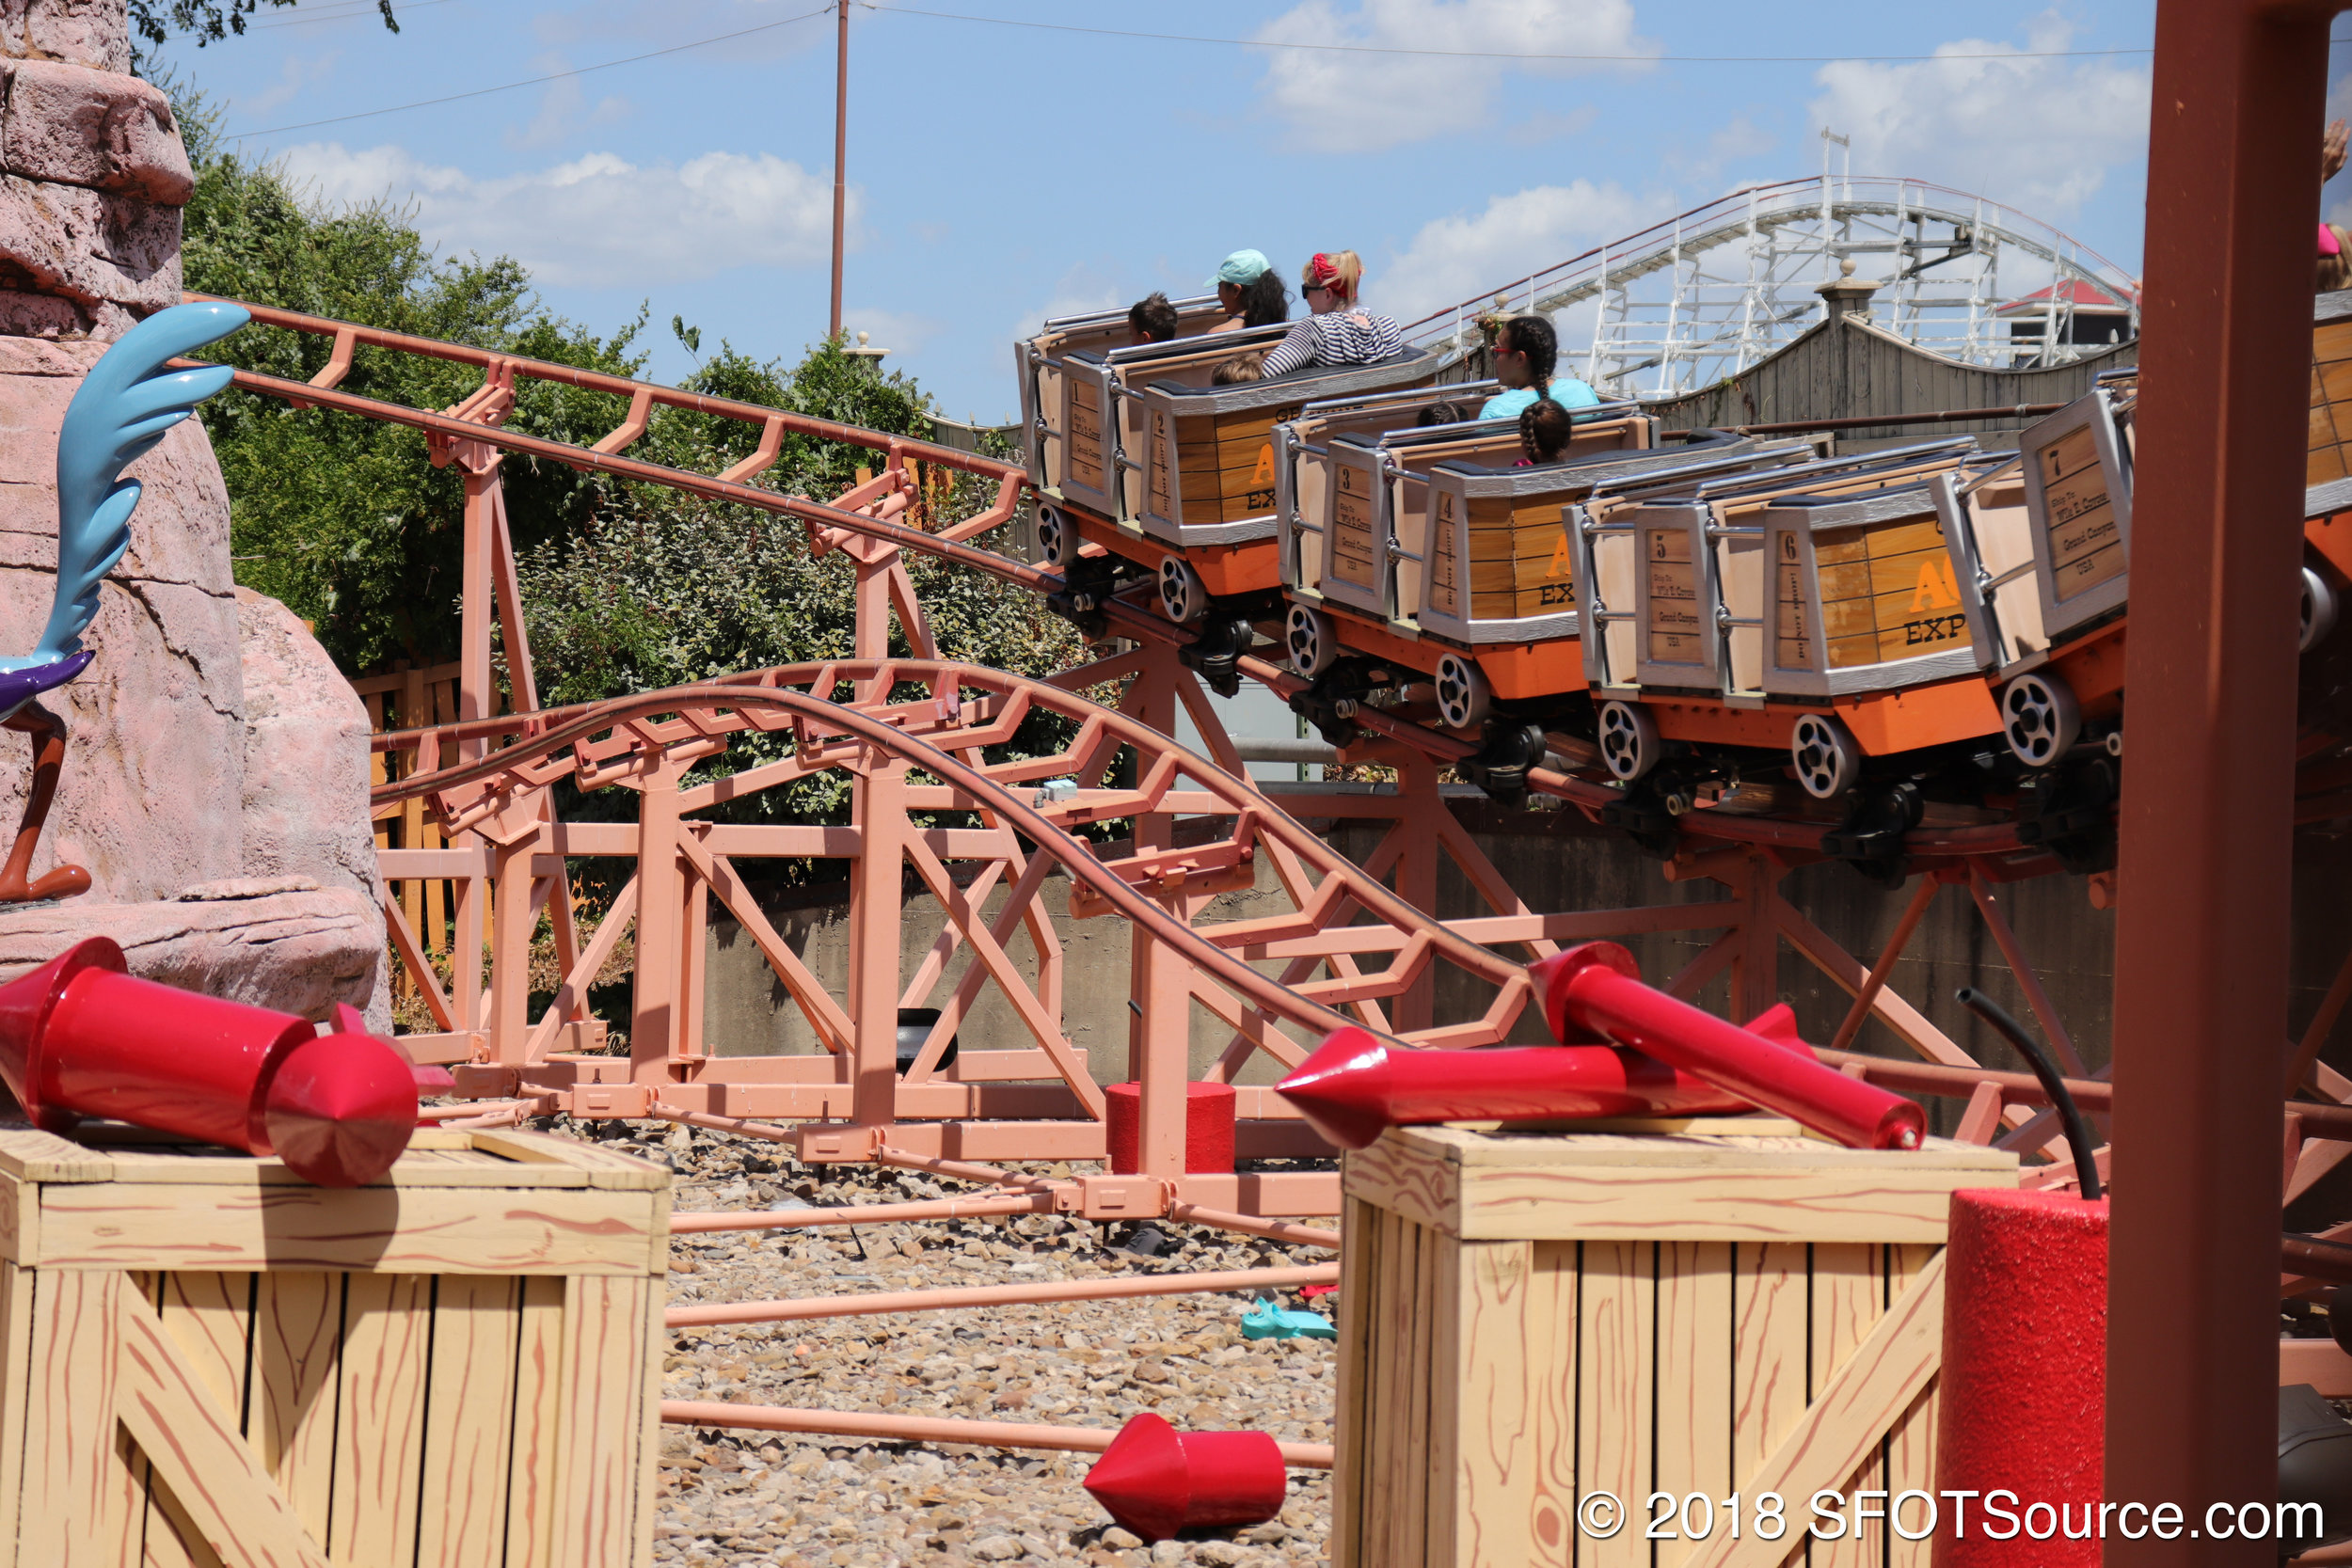 Grand Canyon Blaster is geared towards younger guests.